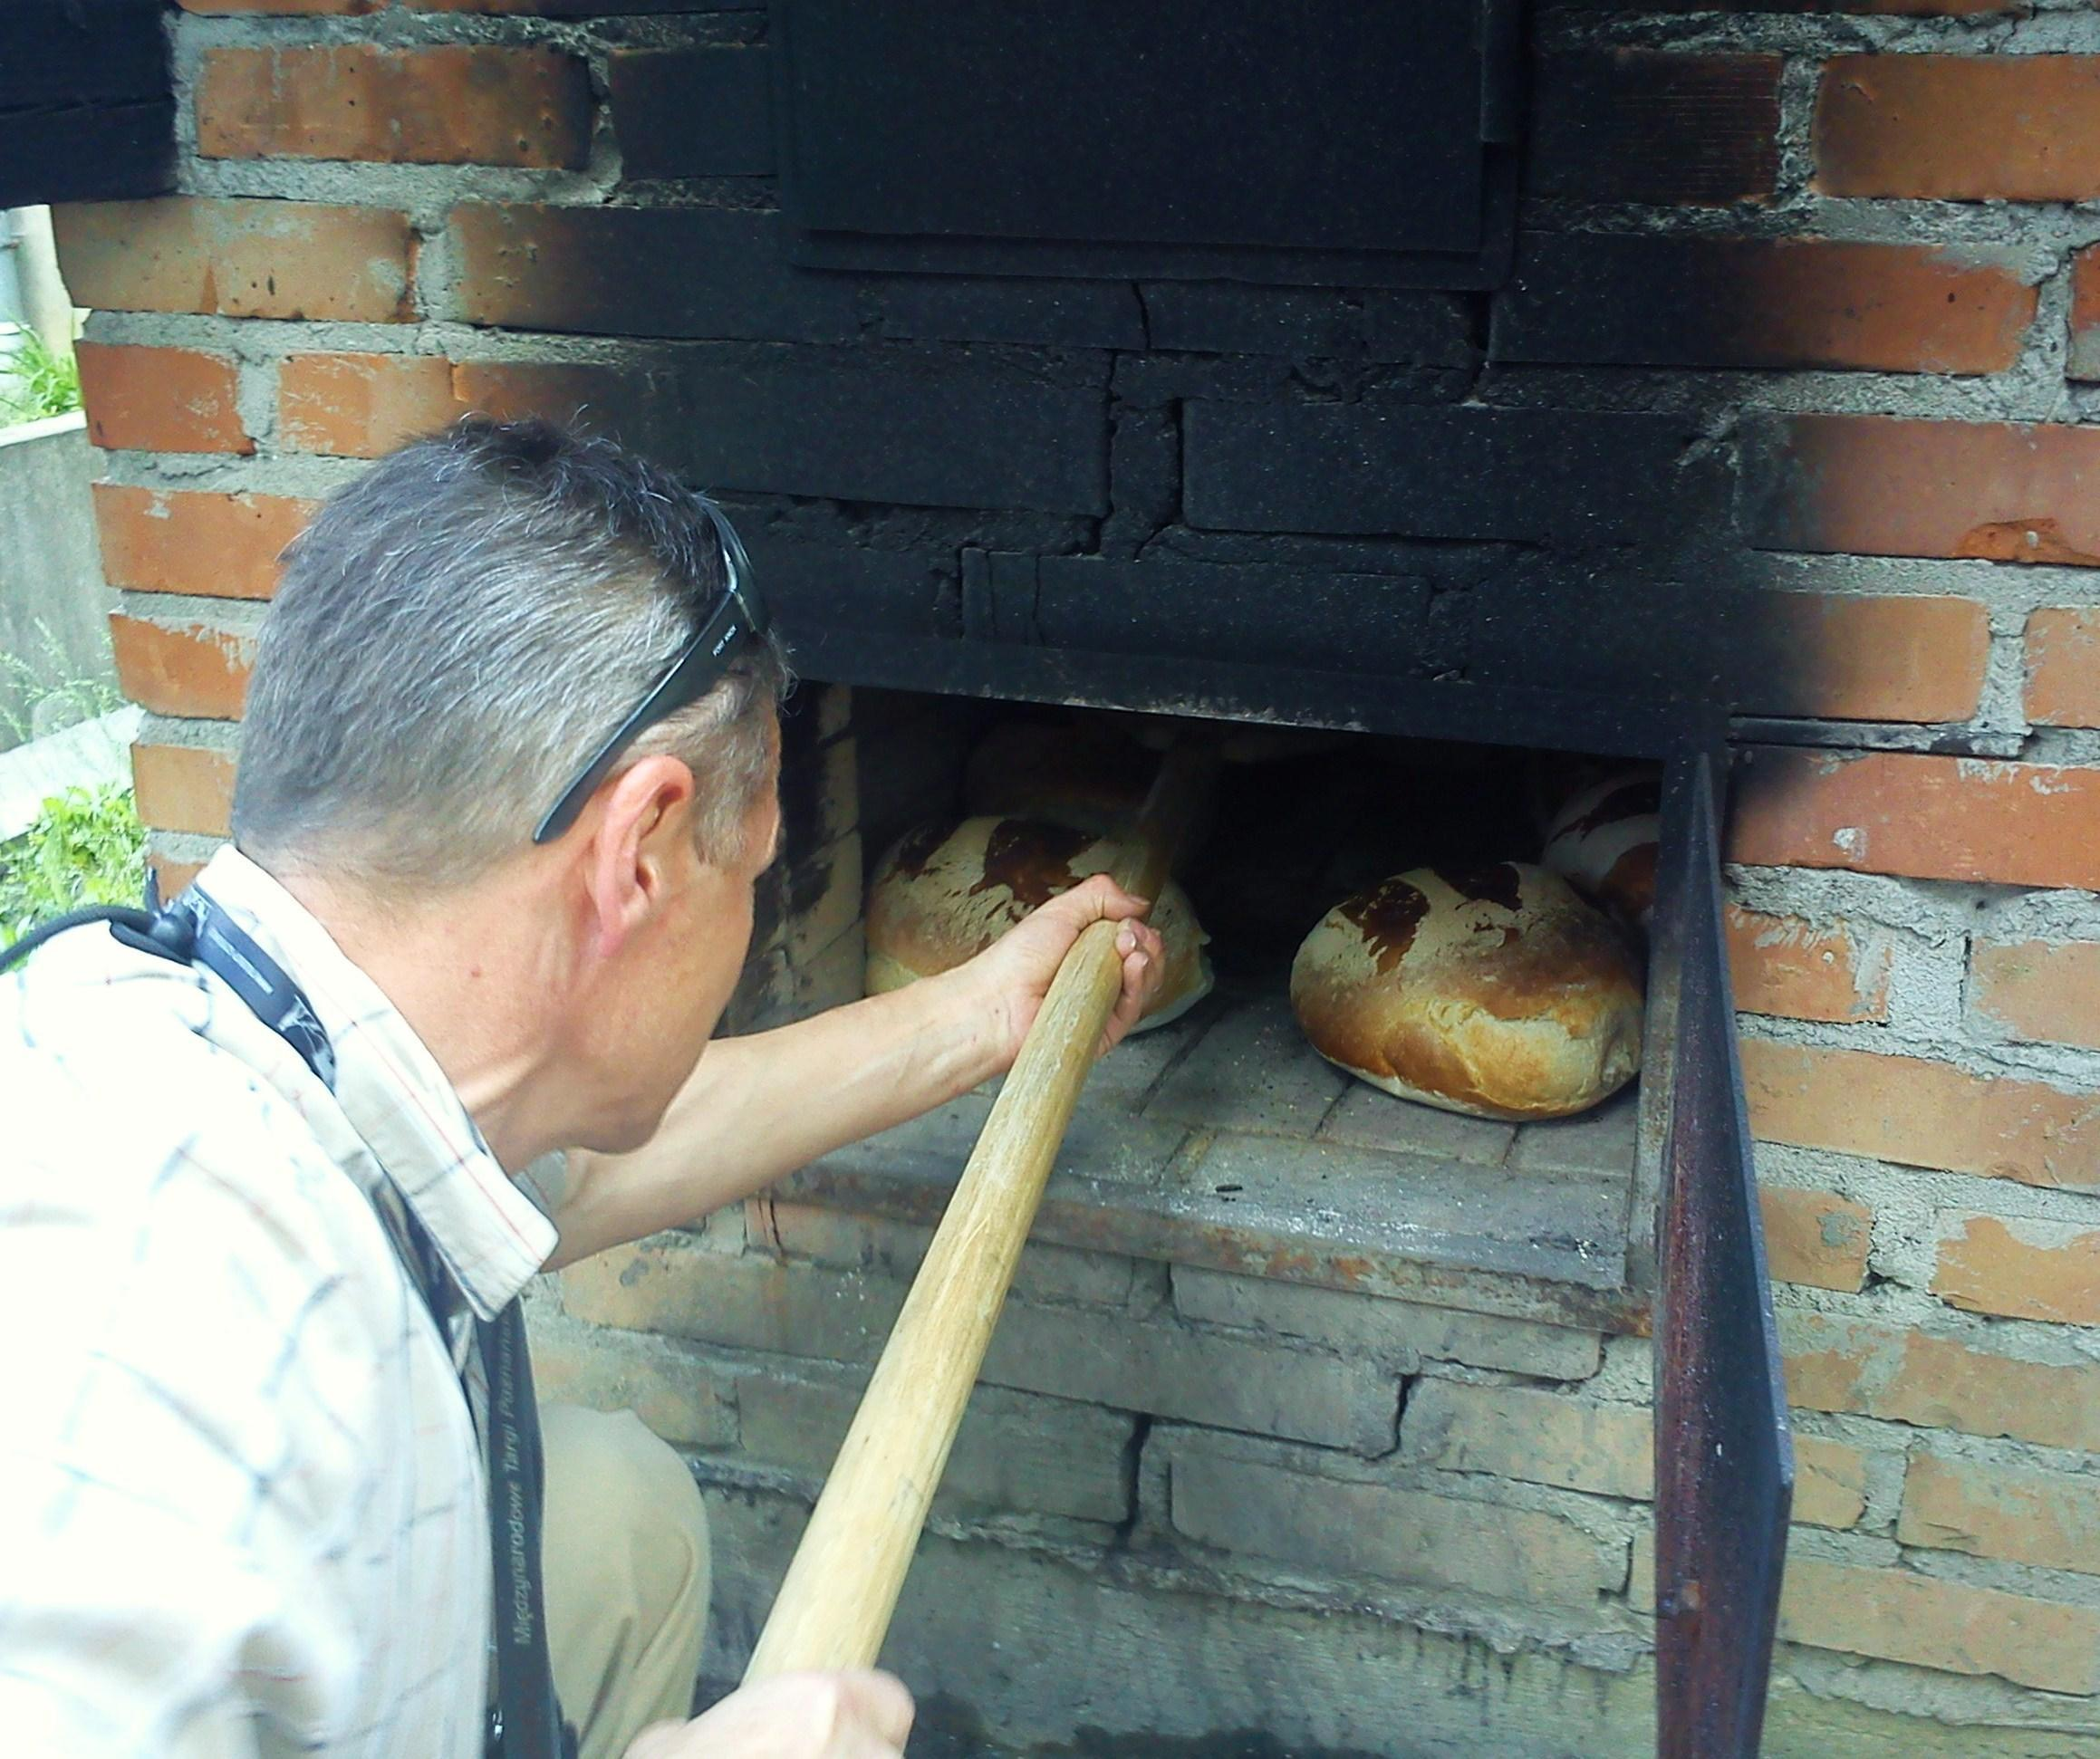 Can I Use A Normal Home Oven To Bake Bread?